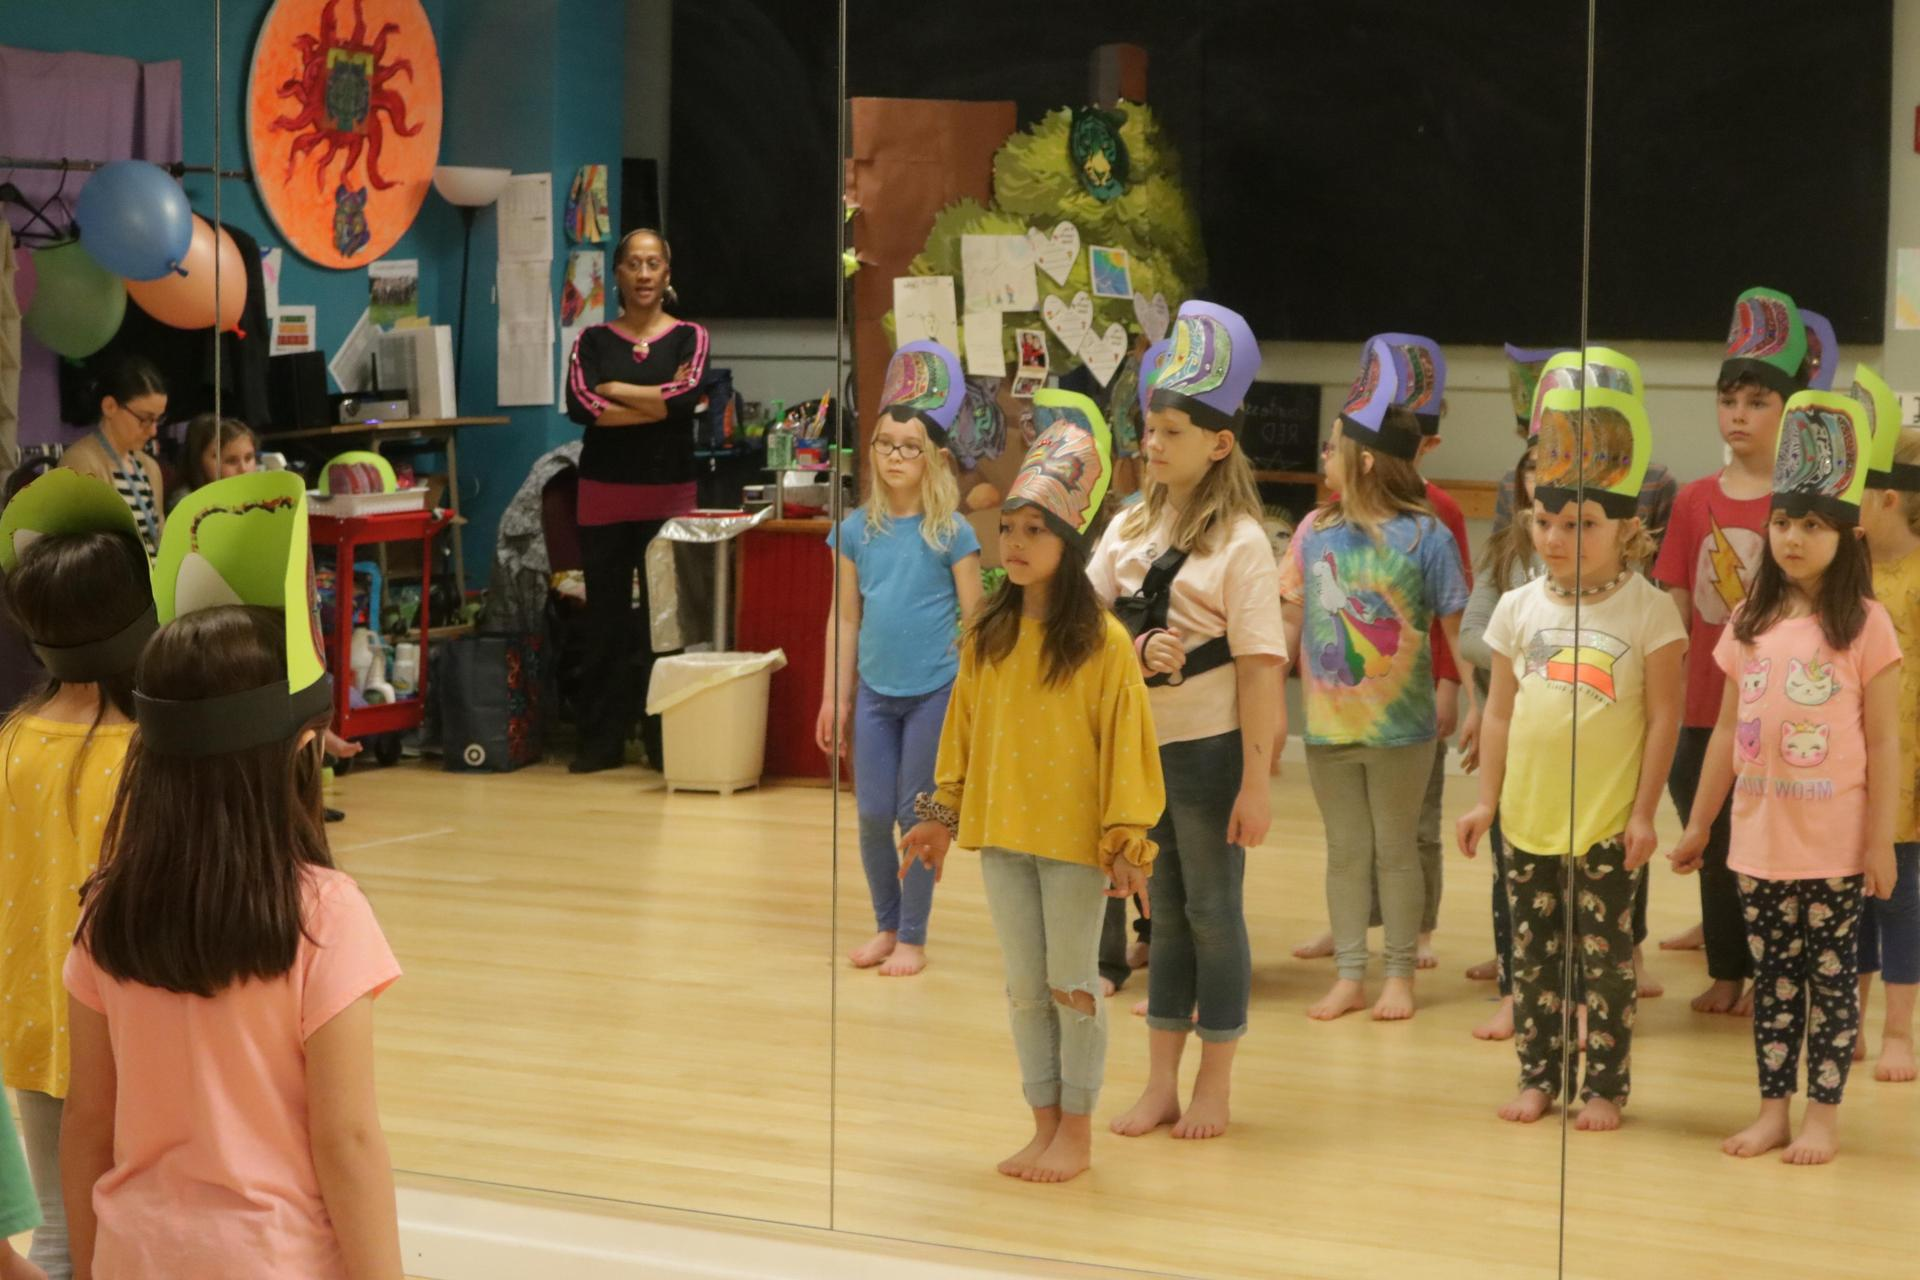 Third graders wear hats and wait for instruction in the dance room